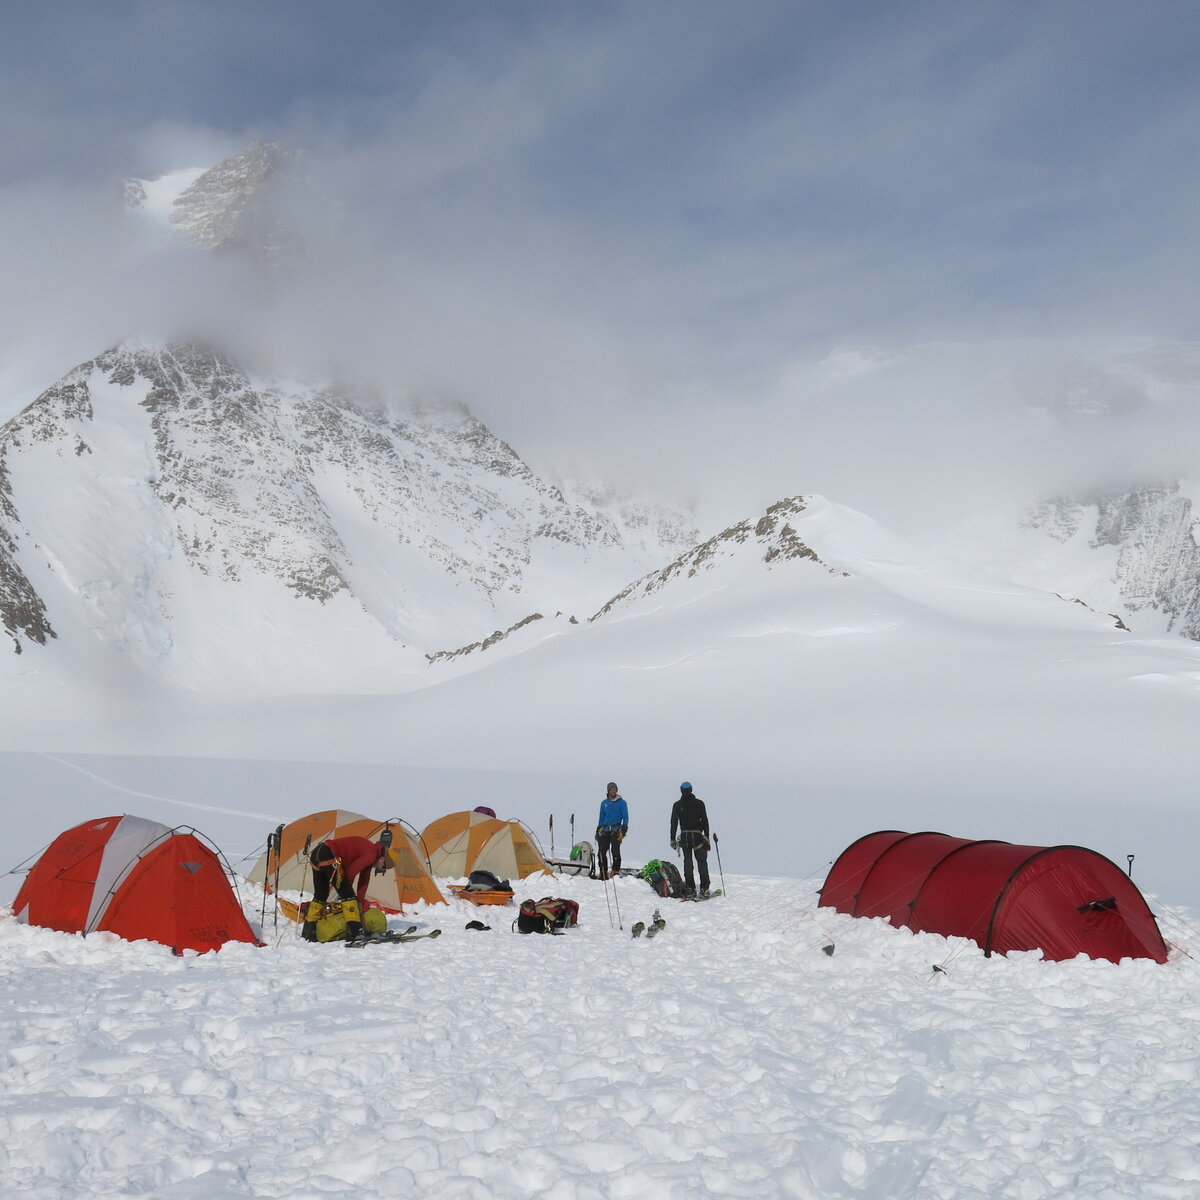 Setting up base camp below Mount Tyree